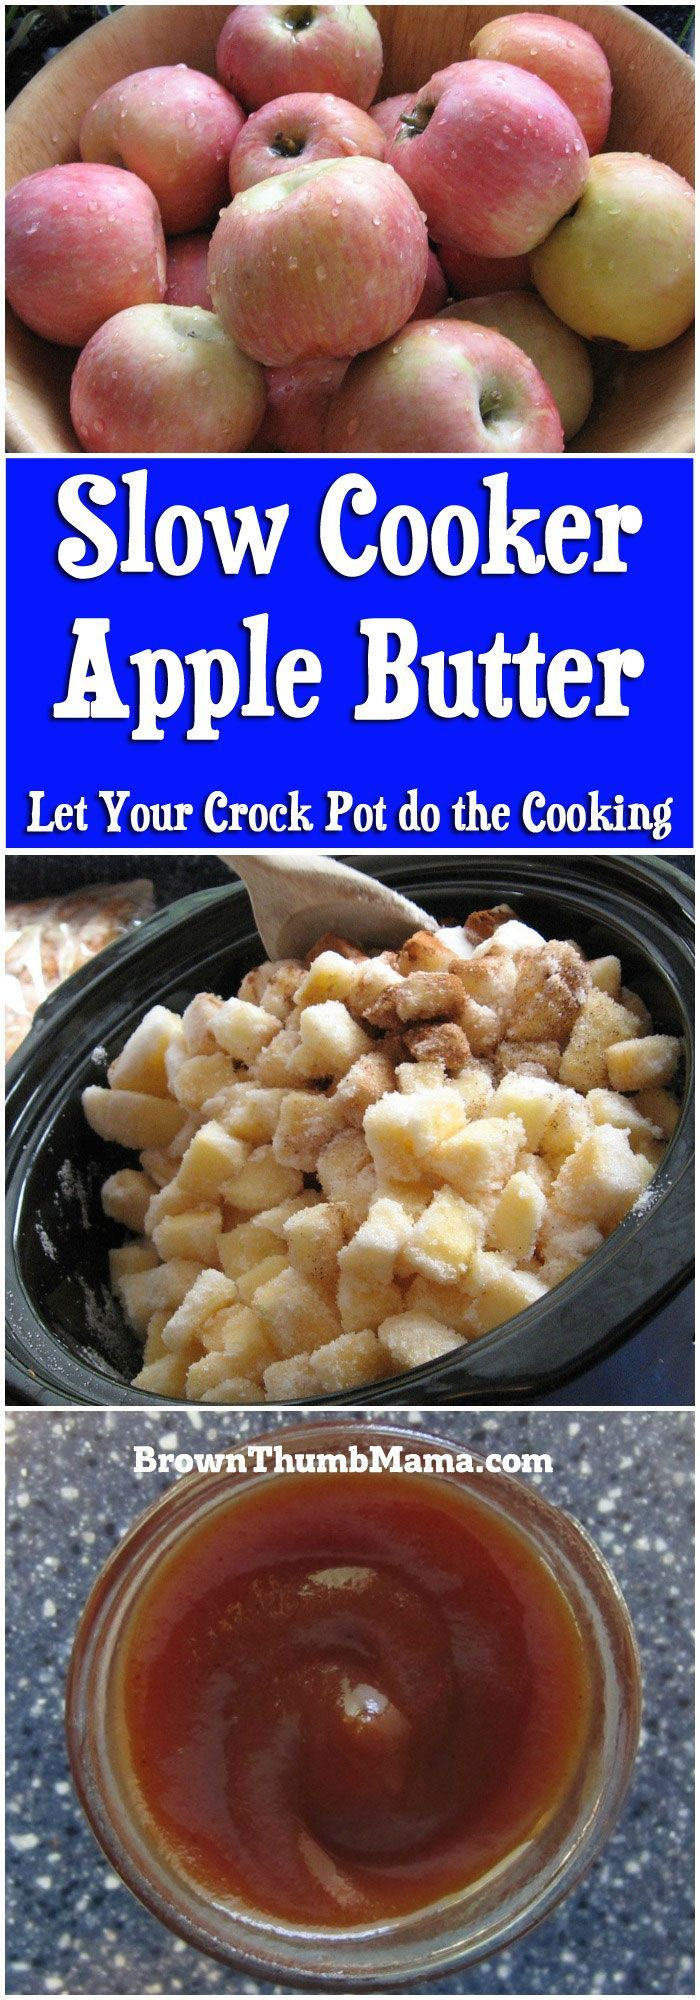 Its so easy to make apple butter in the slow cooker! 5 ingredients make a flavorful spread for toast, english muffins, or best of all--turkey sandwiches.